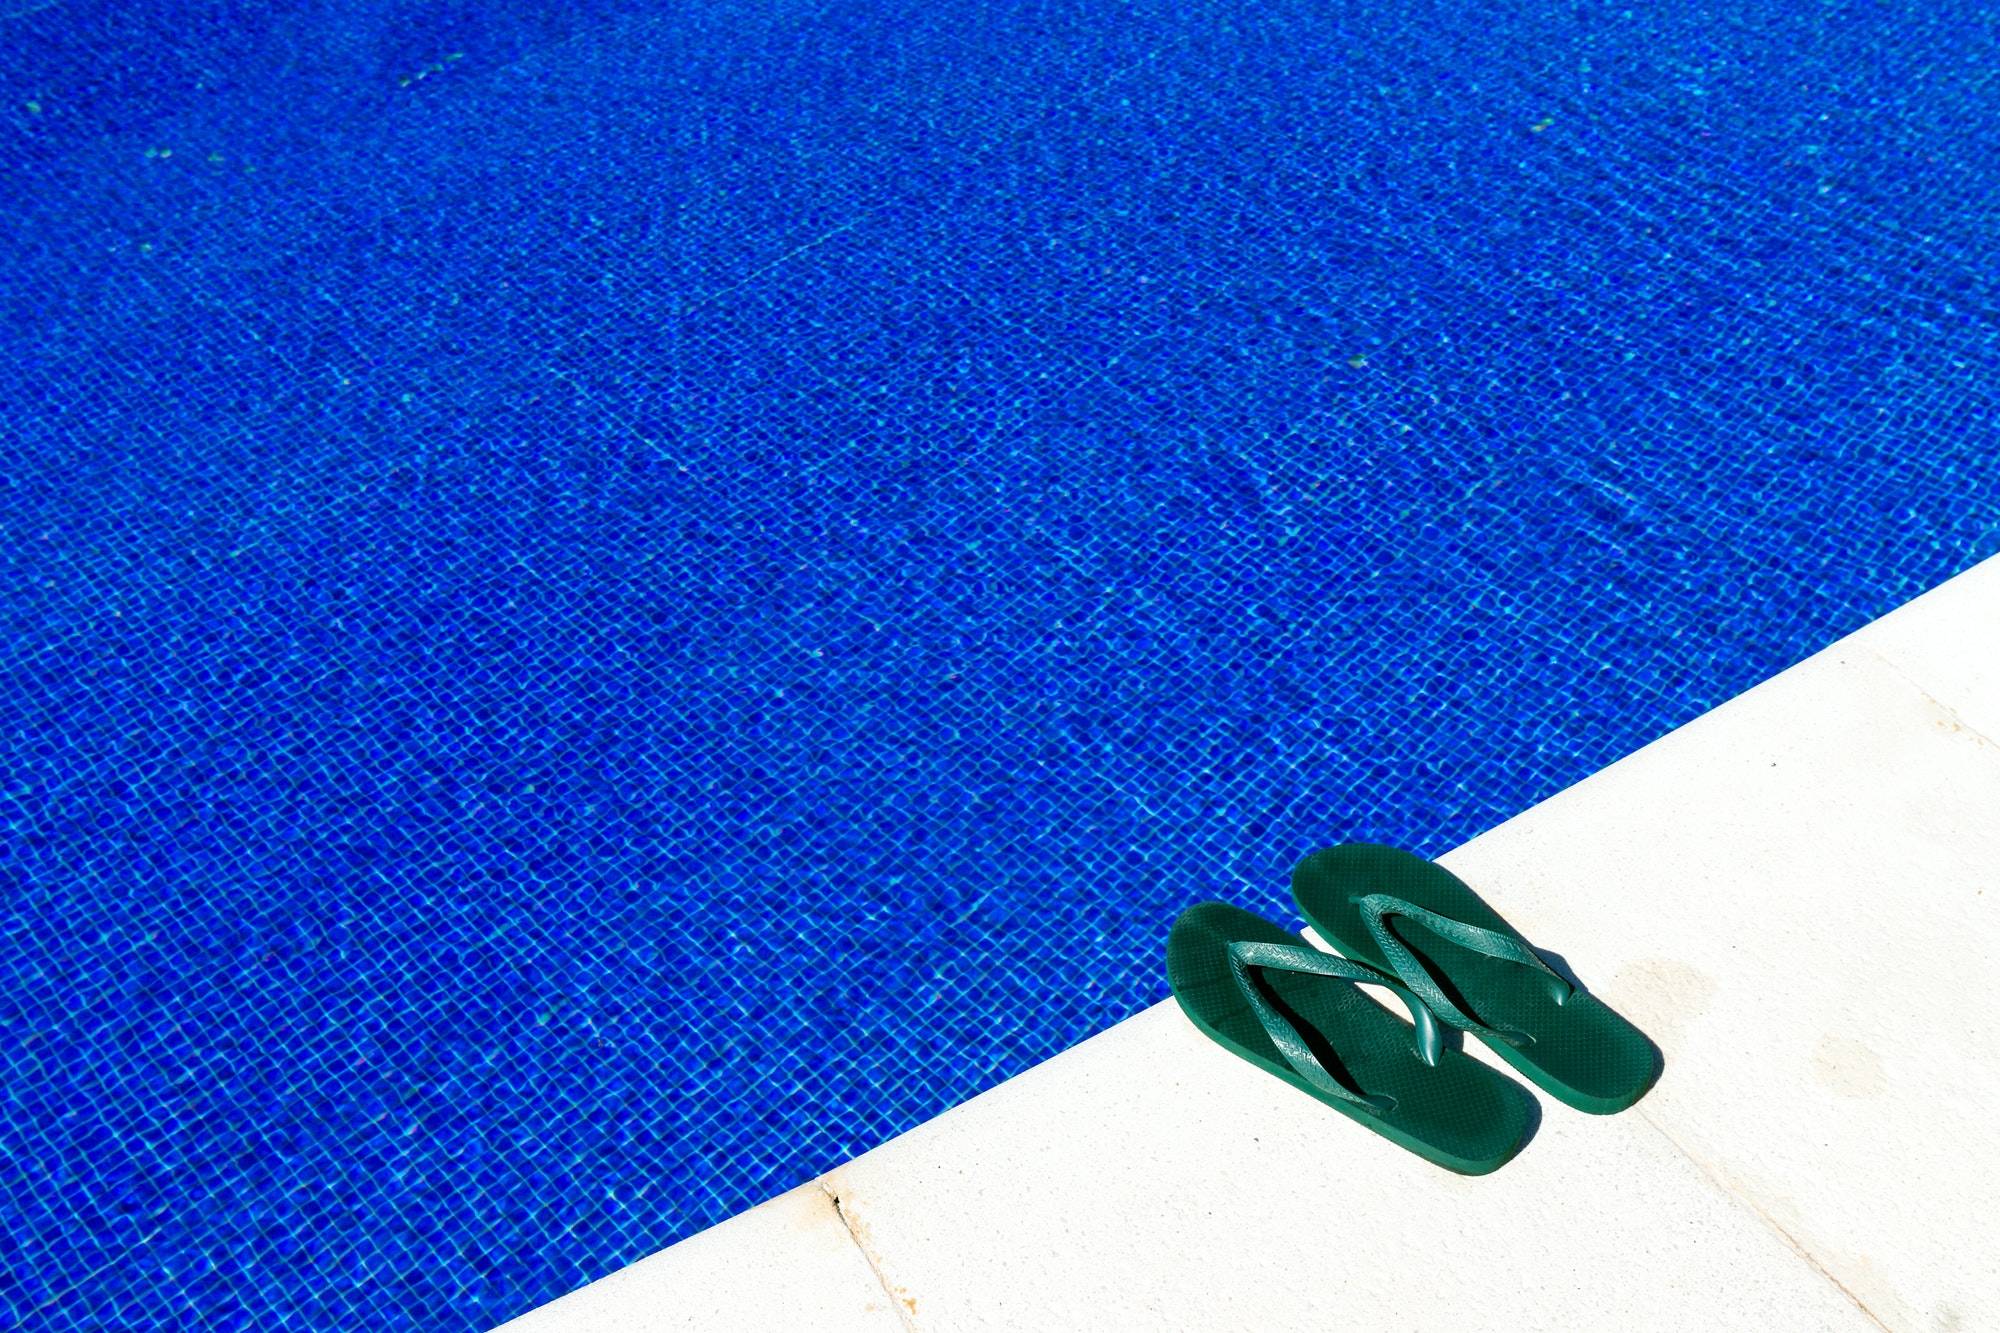 Swimming pool with flip-flops